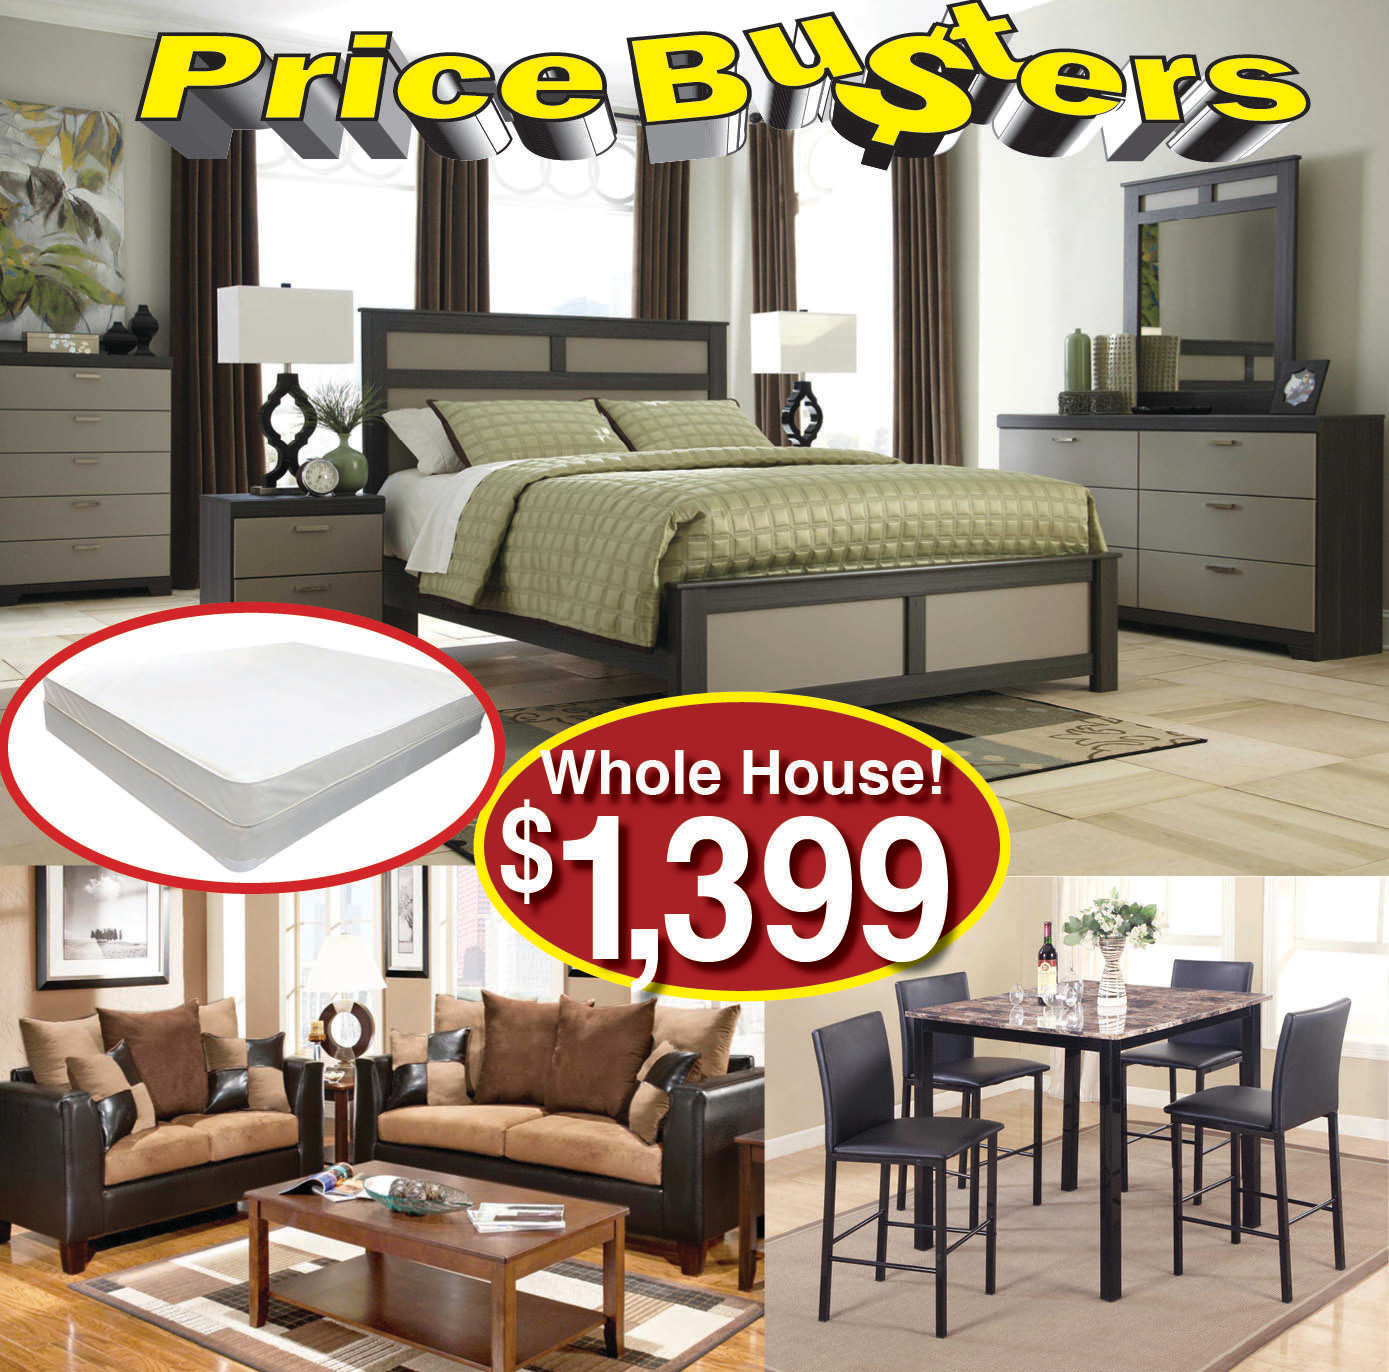 Cheap Furniture Baltimore Price Busters Discount Furniture In Rosedale Md Whitepages